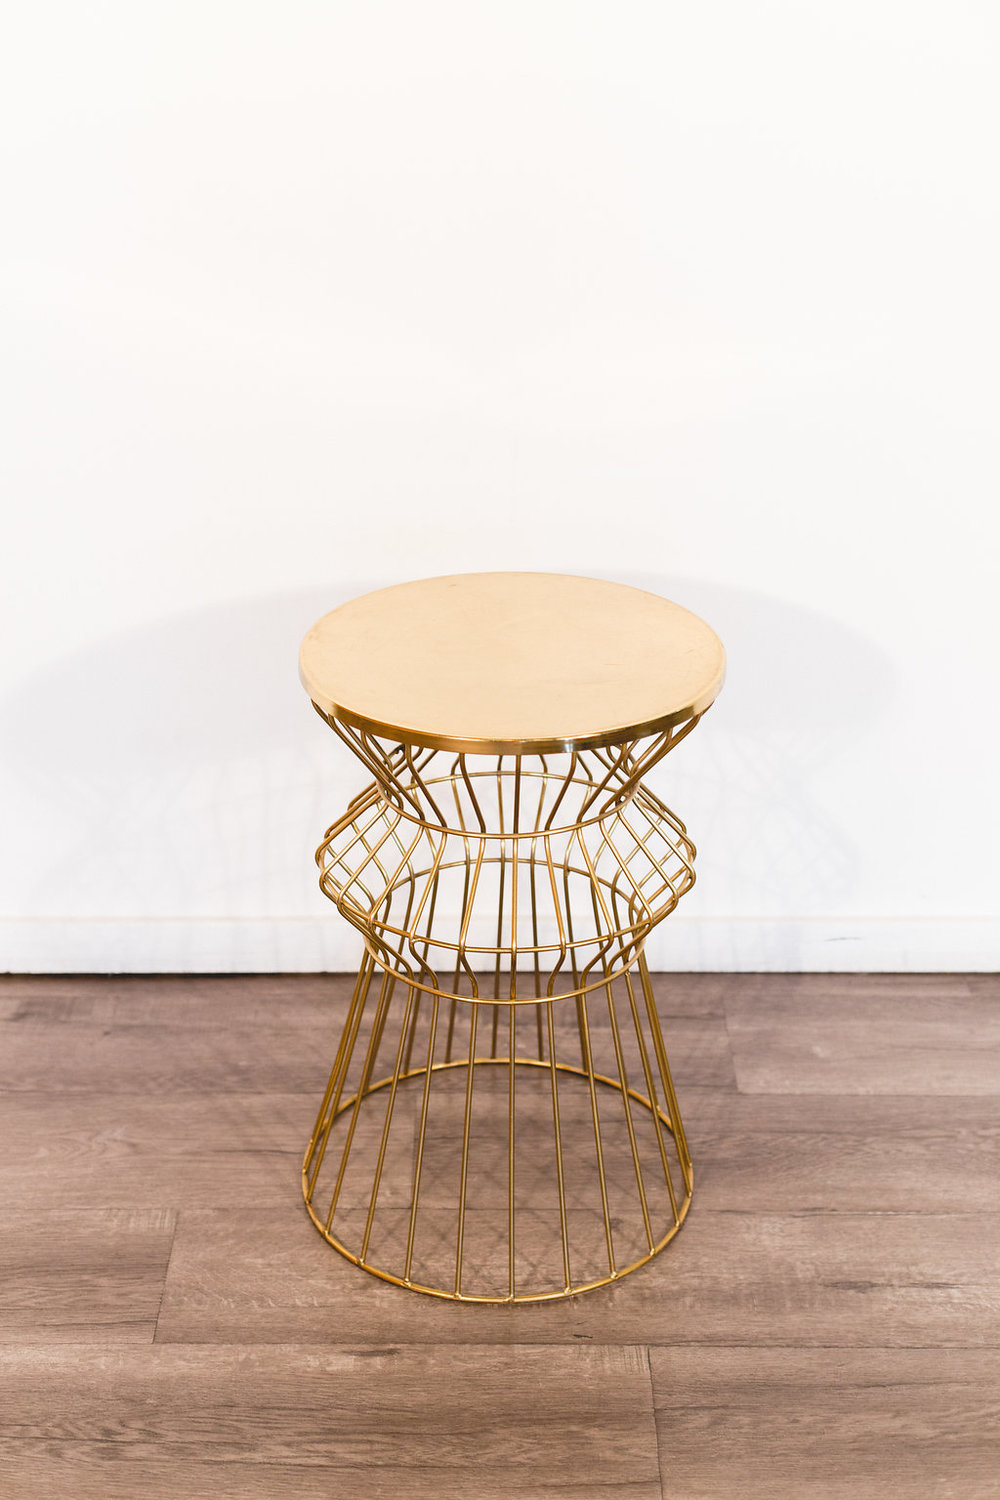 "Gold Table 15"" diameter 22.5"" tall Quantity: 1 Price: $50"